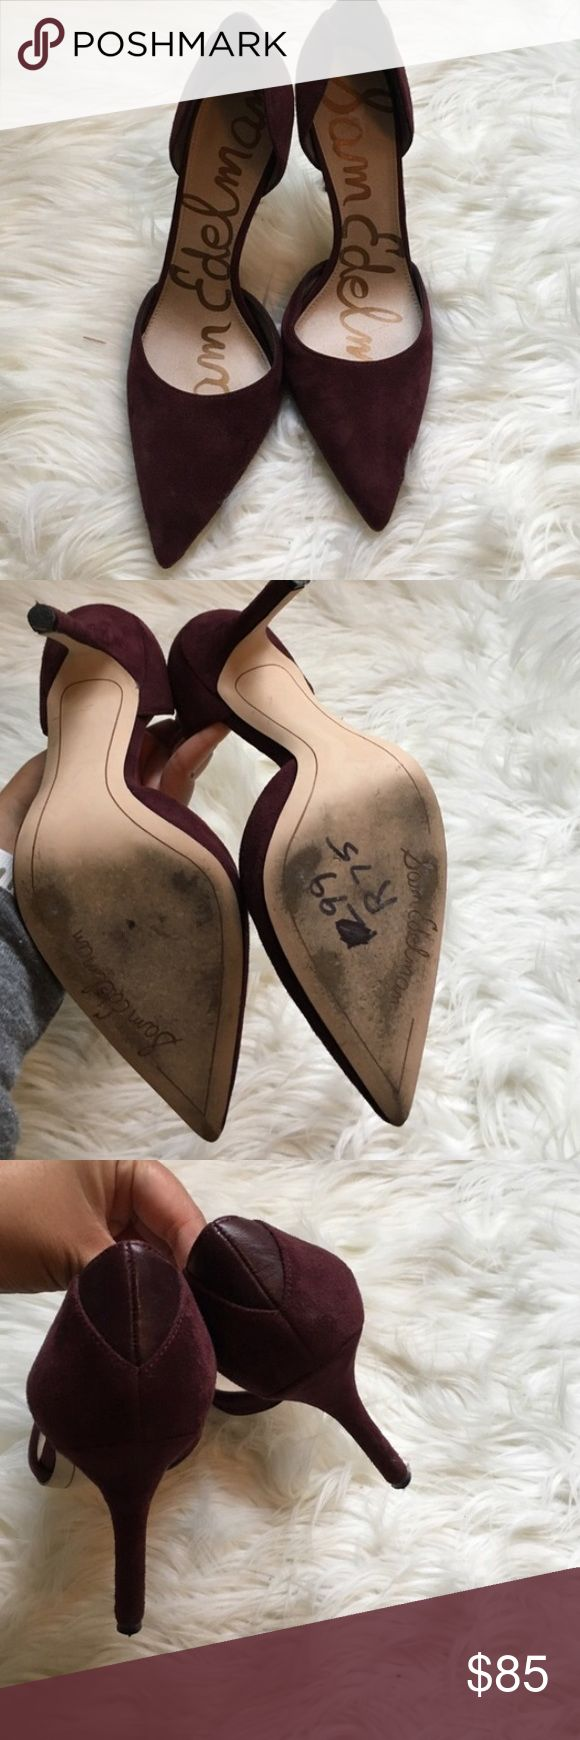 Sam Edelman Maroon Pumps Brand new worn one Sam Edelman Wine Maroon Pumps. As shown in the picture the sole has some scuffs but otherwise look very new. Size 7.5 Sam Edelman Shoes Heels